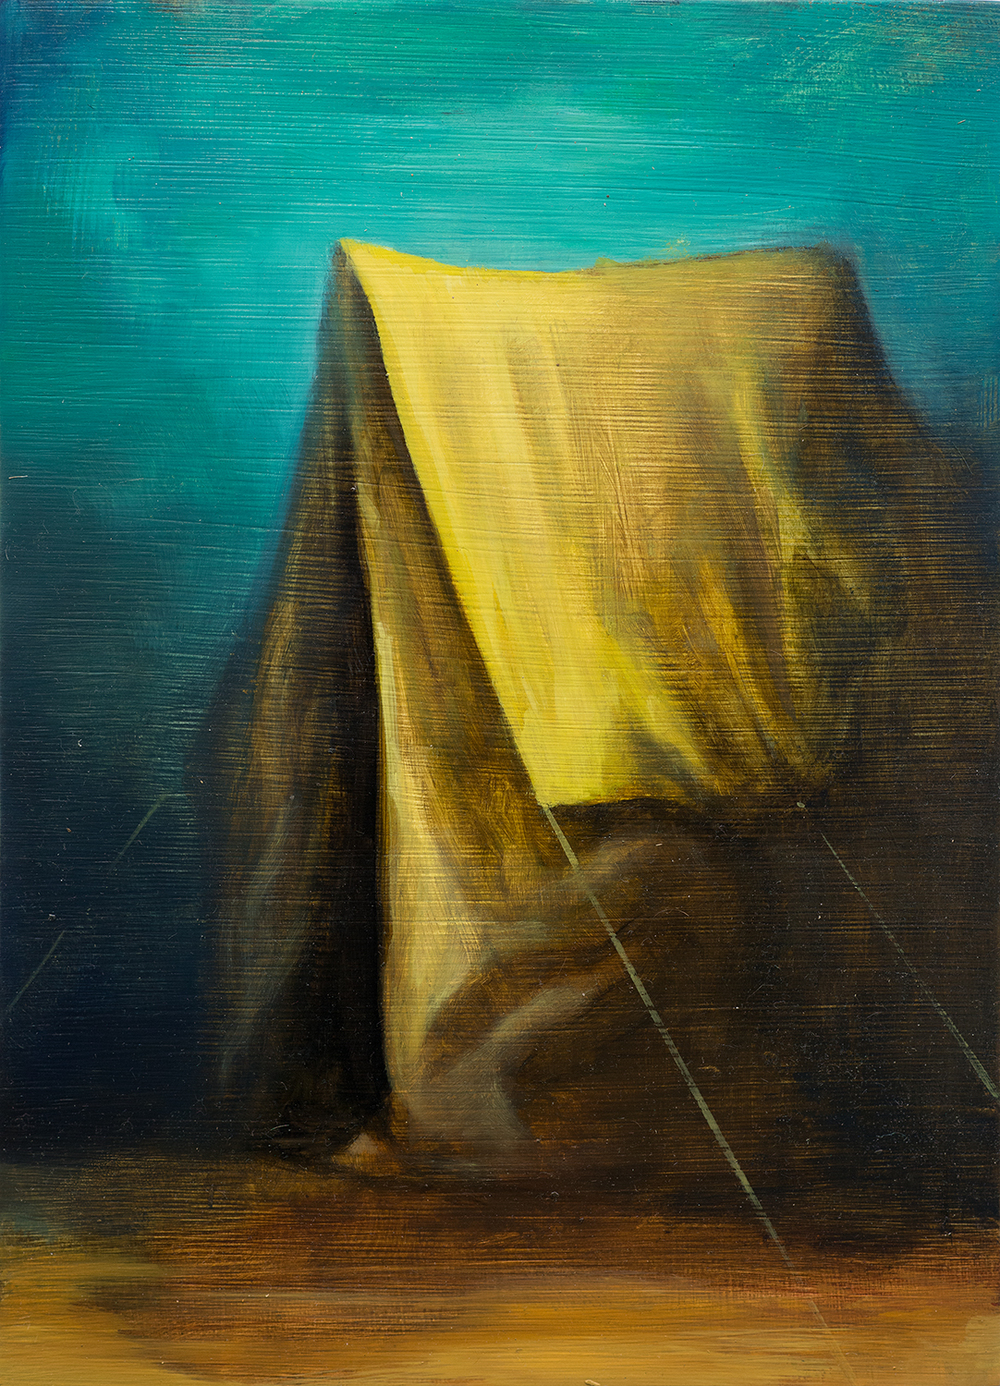 Zelt II, Oil on Wood, 29x21cm, 2014